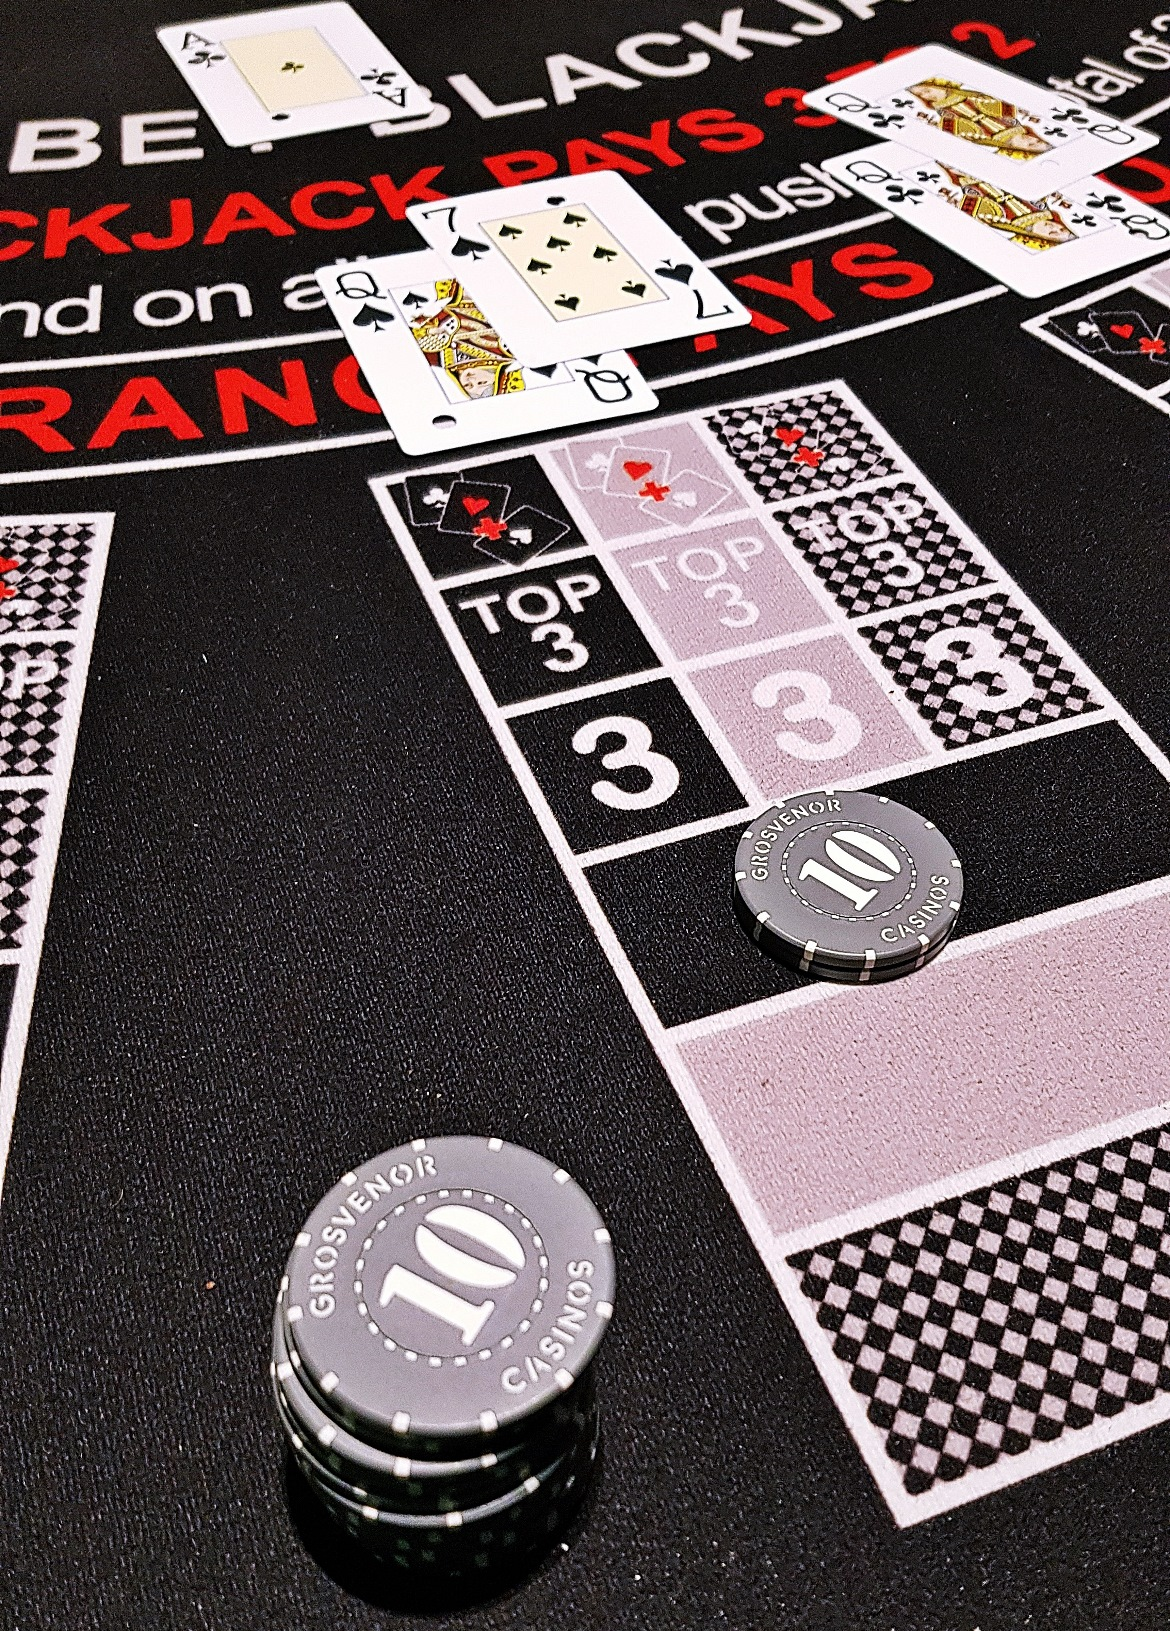 Early hands of blackjack - Grosvenor Casino Leeds review by BeckyBecky Blogs